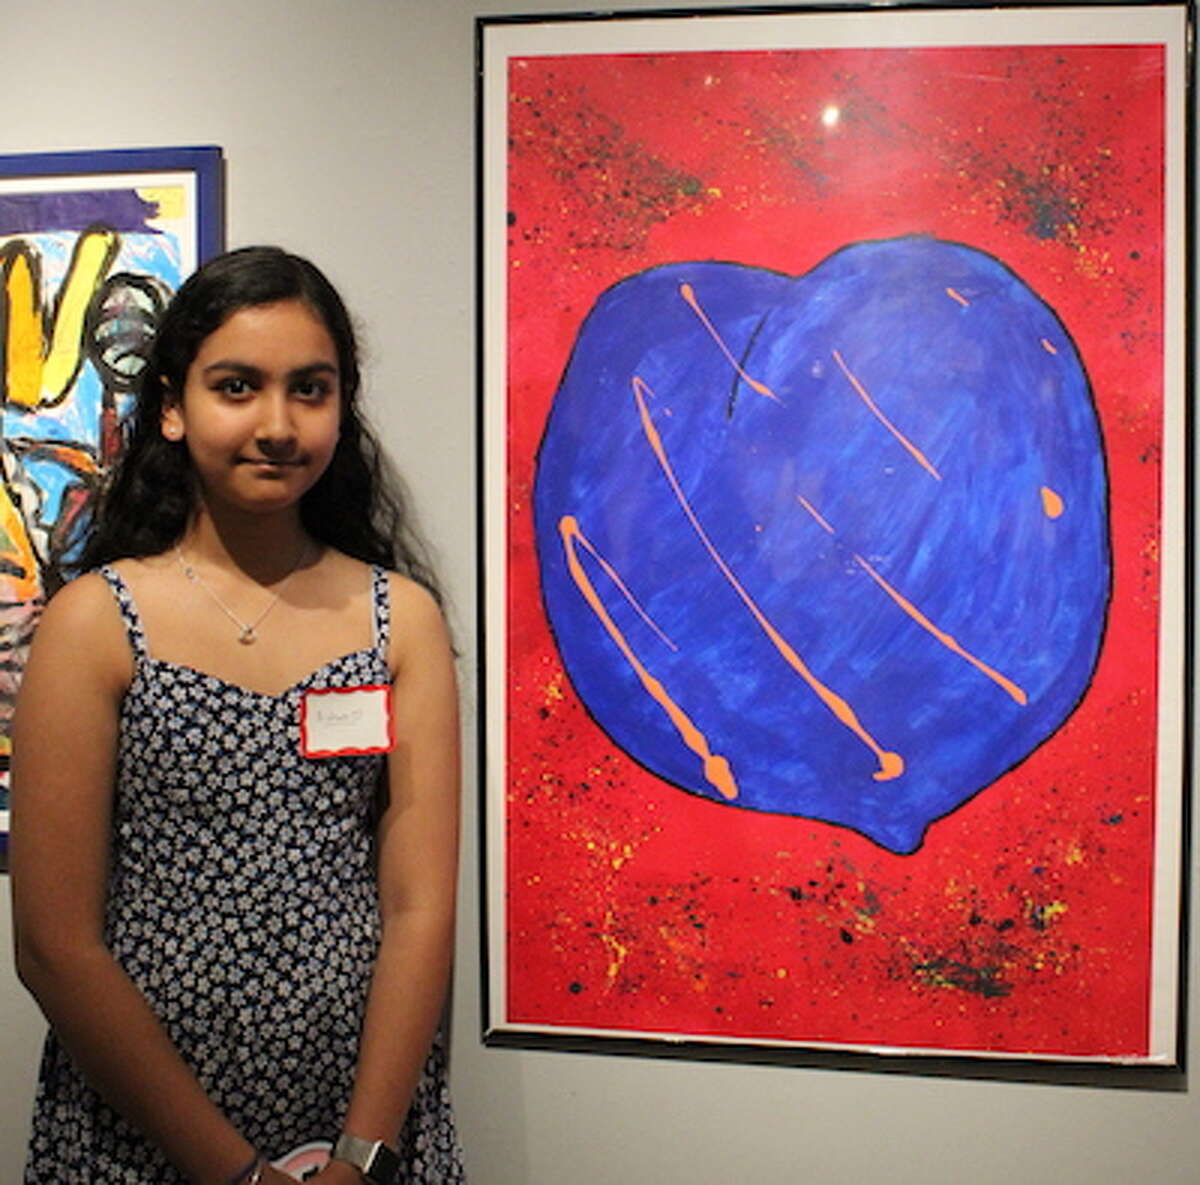 Aishani Walia won 1st Prize in Painting at the 29th annual Silvermine School of Art Student Exhibition on June 2.